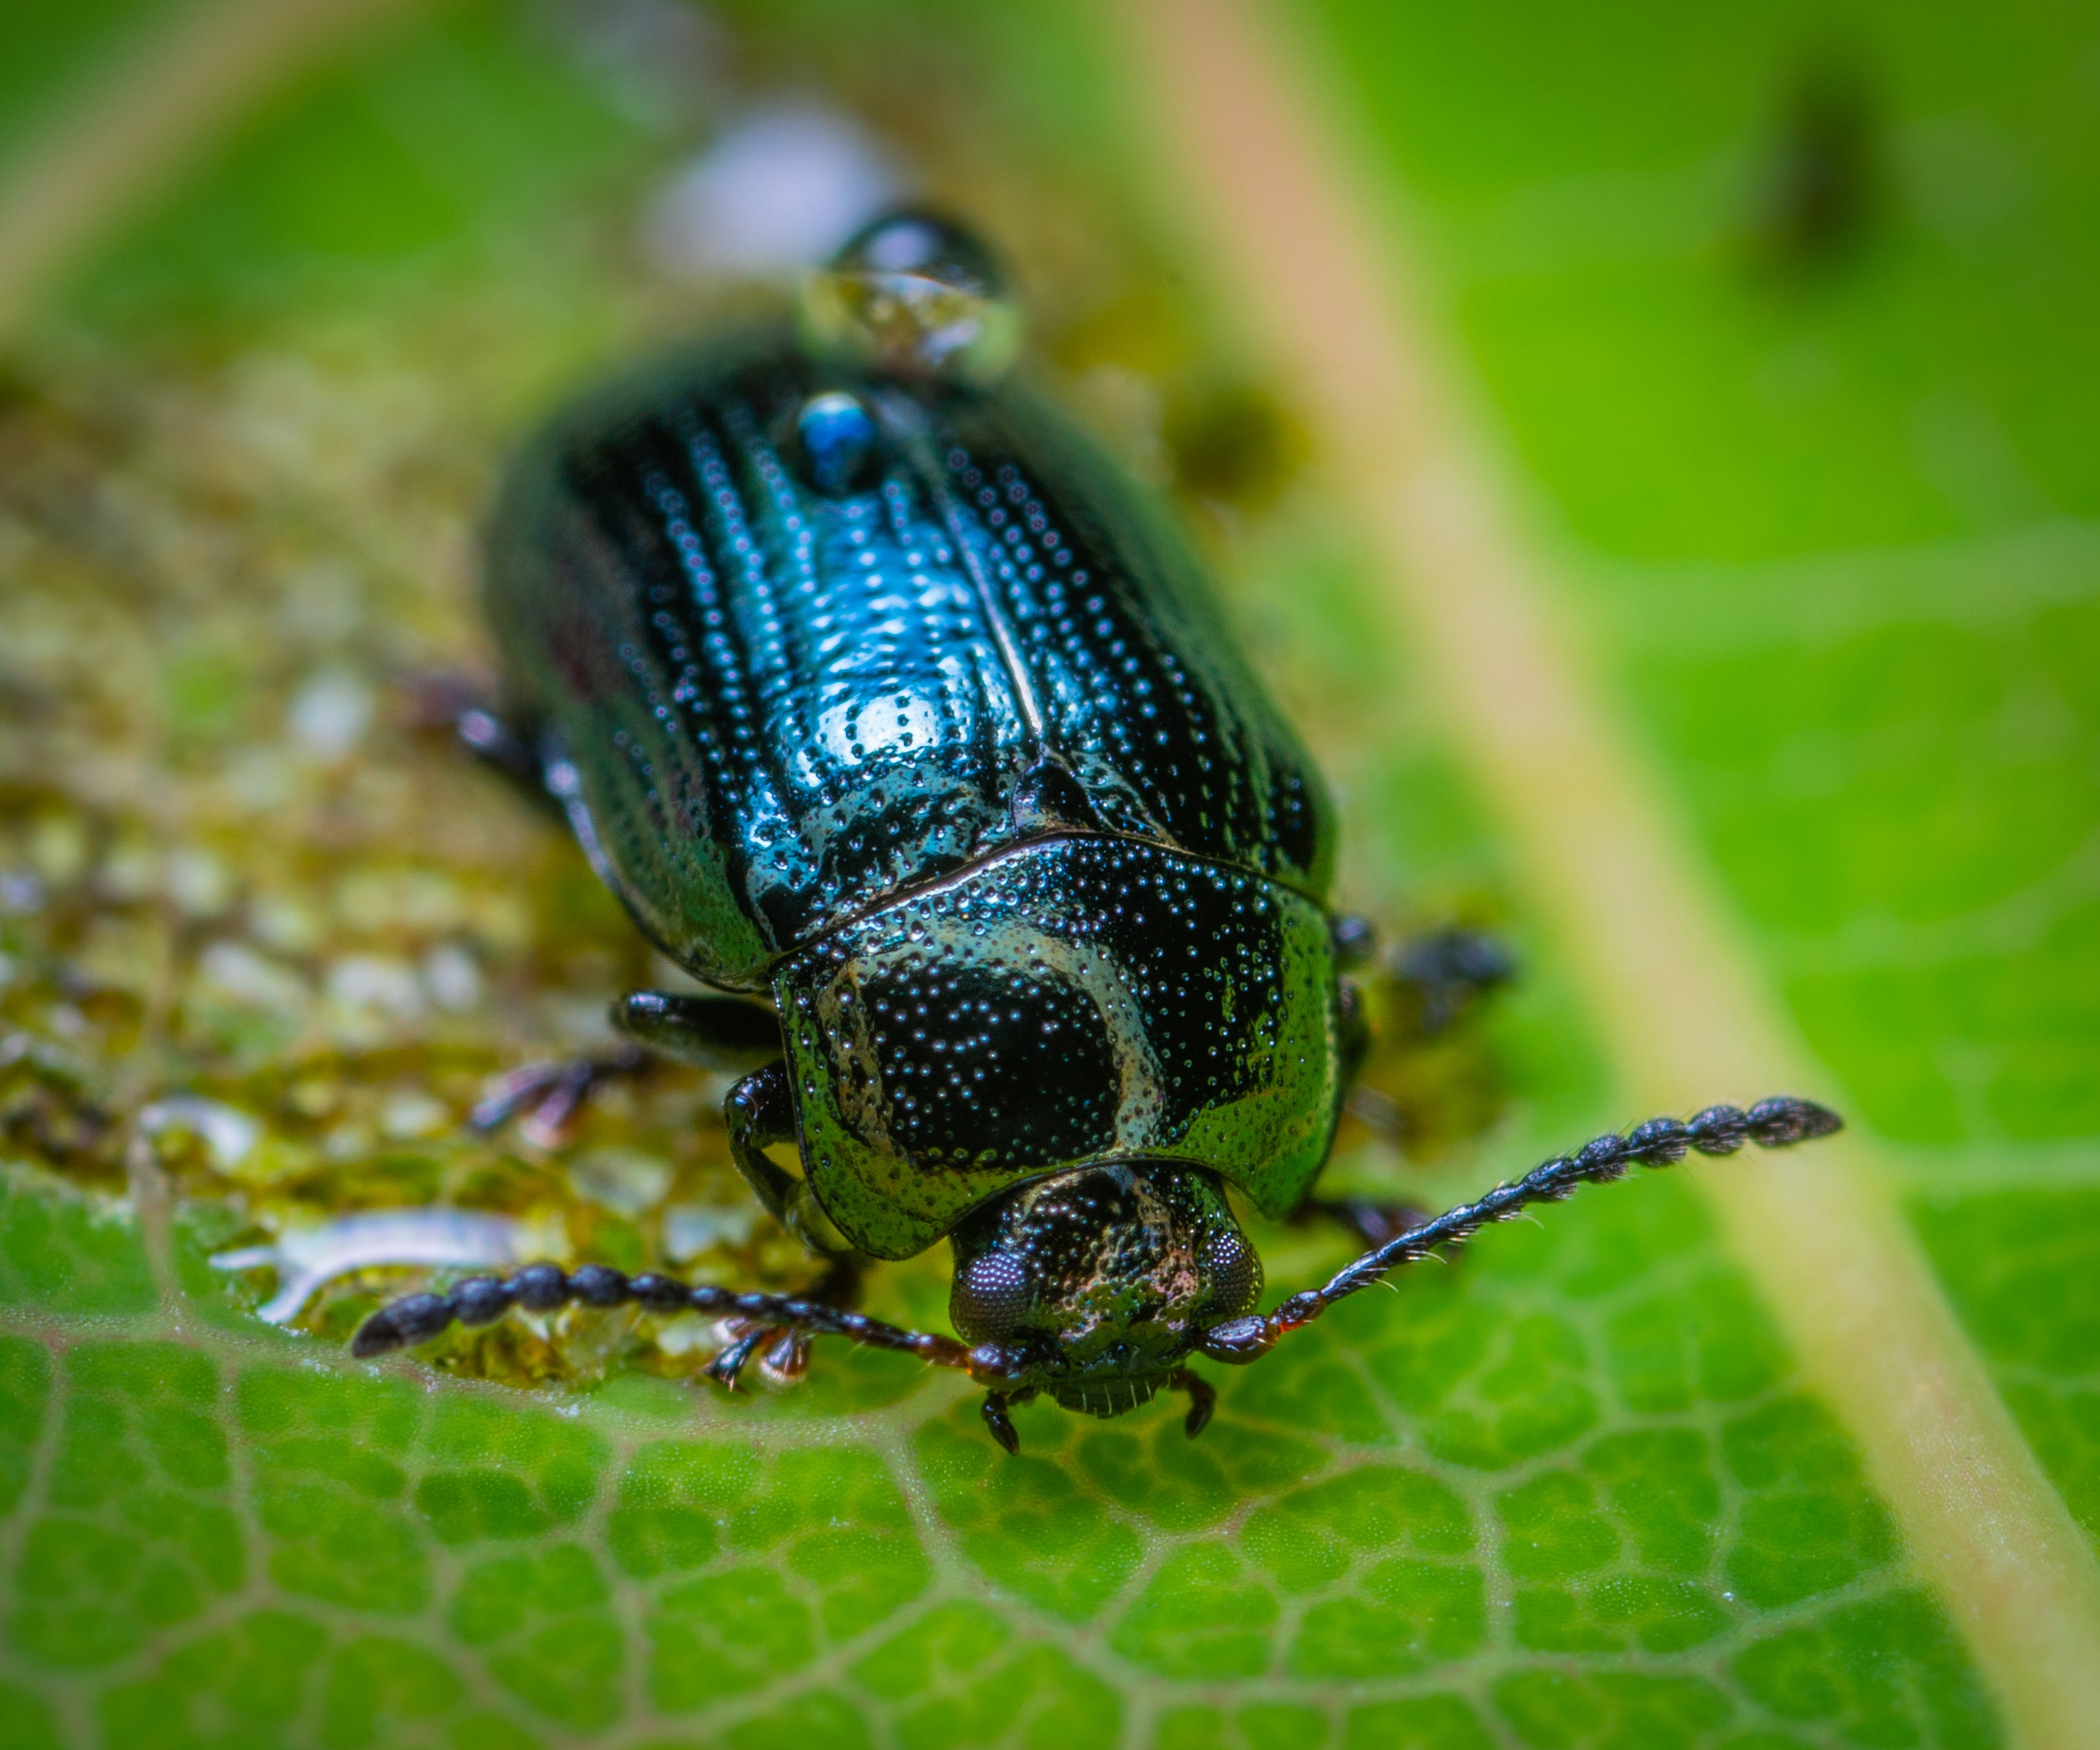 Green and Black Ground Beetle on Leaf